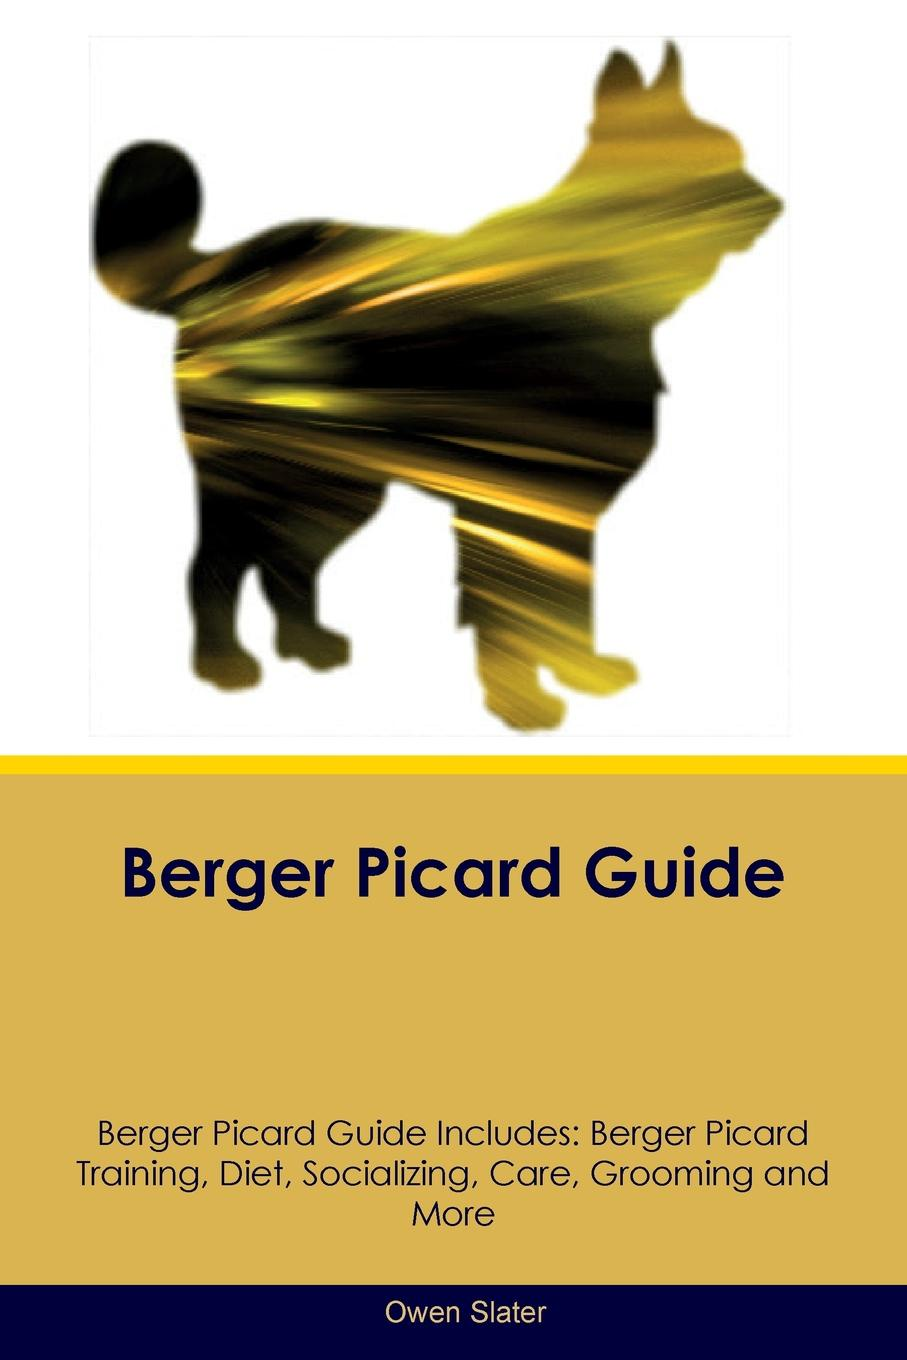 Owen Slater Berger Picard Guide Berger Picard Guide Includes. Berger Picard Training, Diet, Socializing, Care, Grooming, Breeding and More